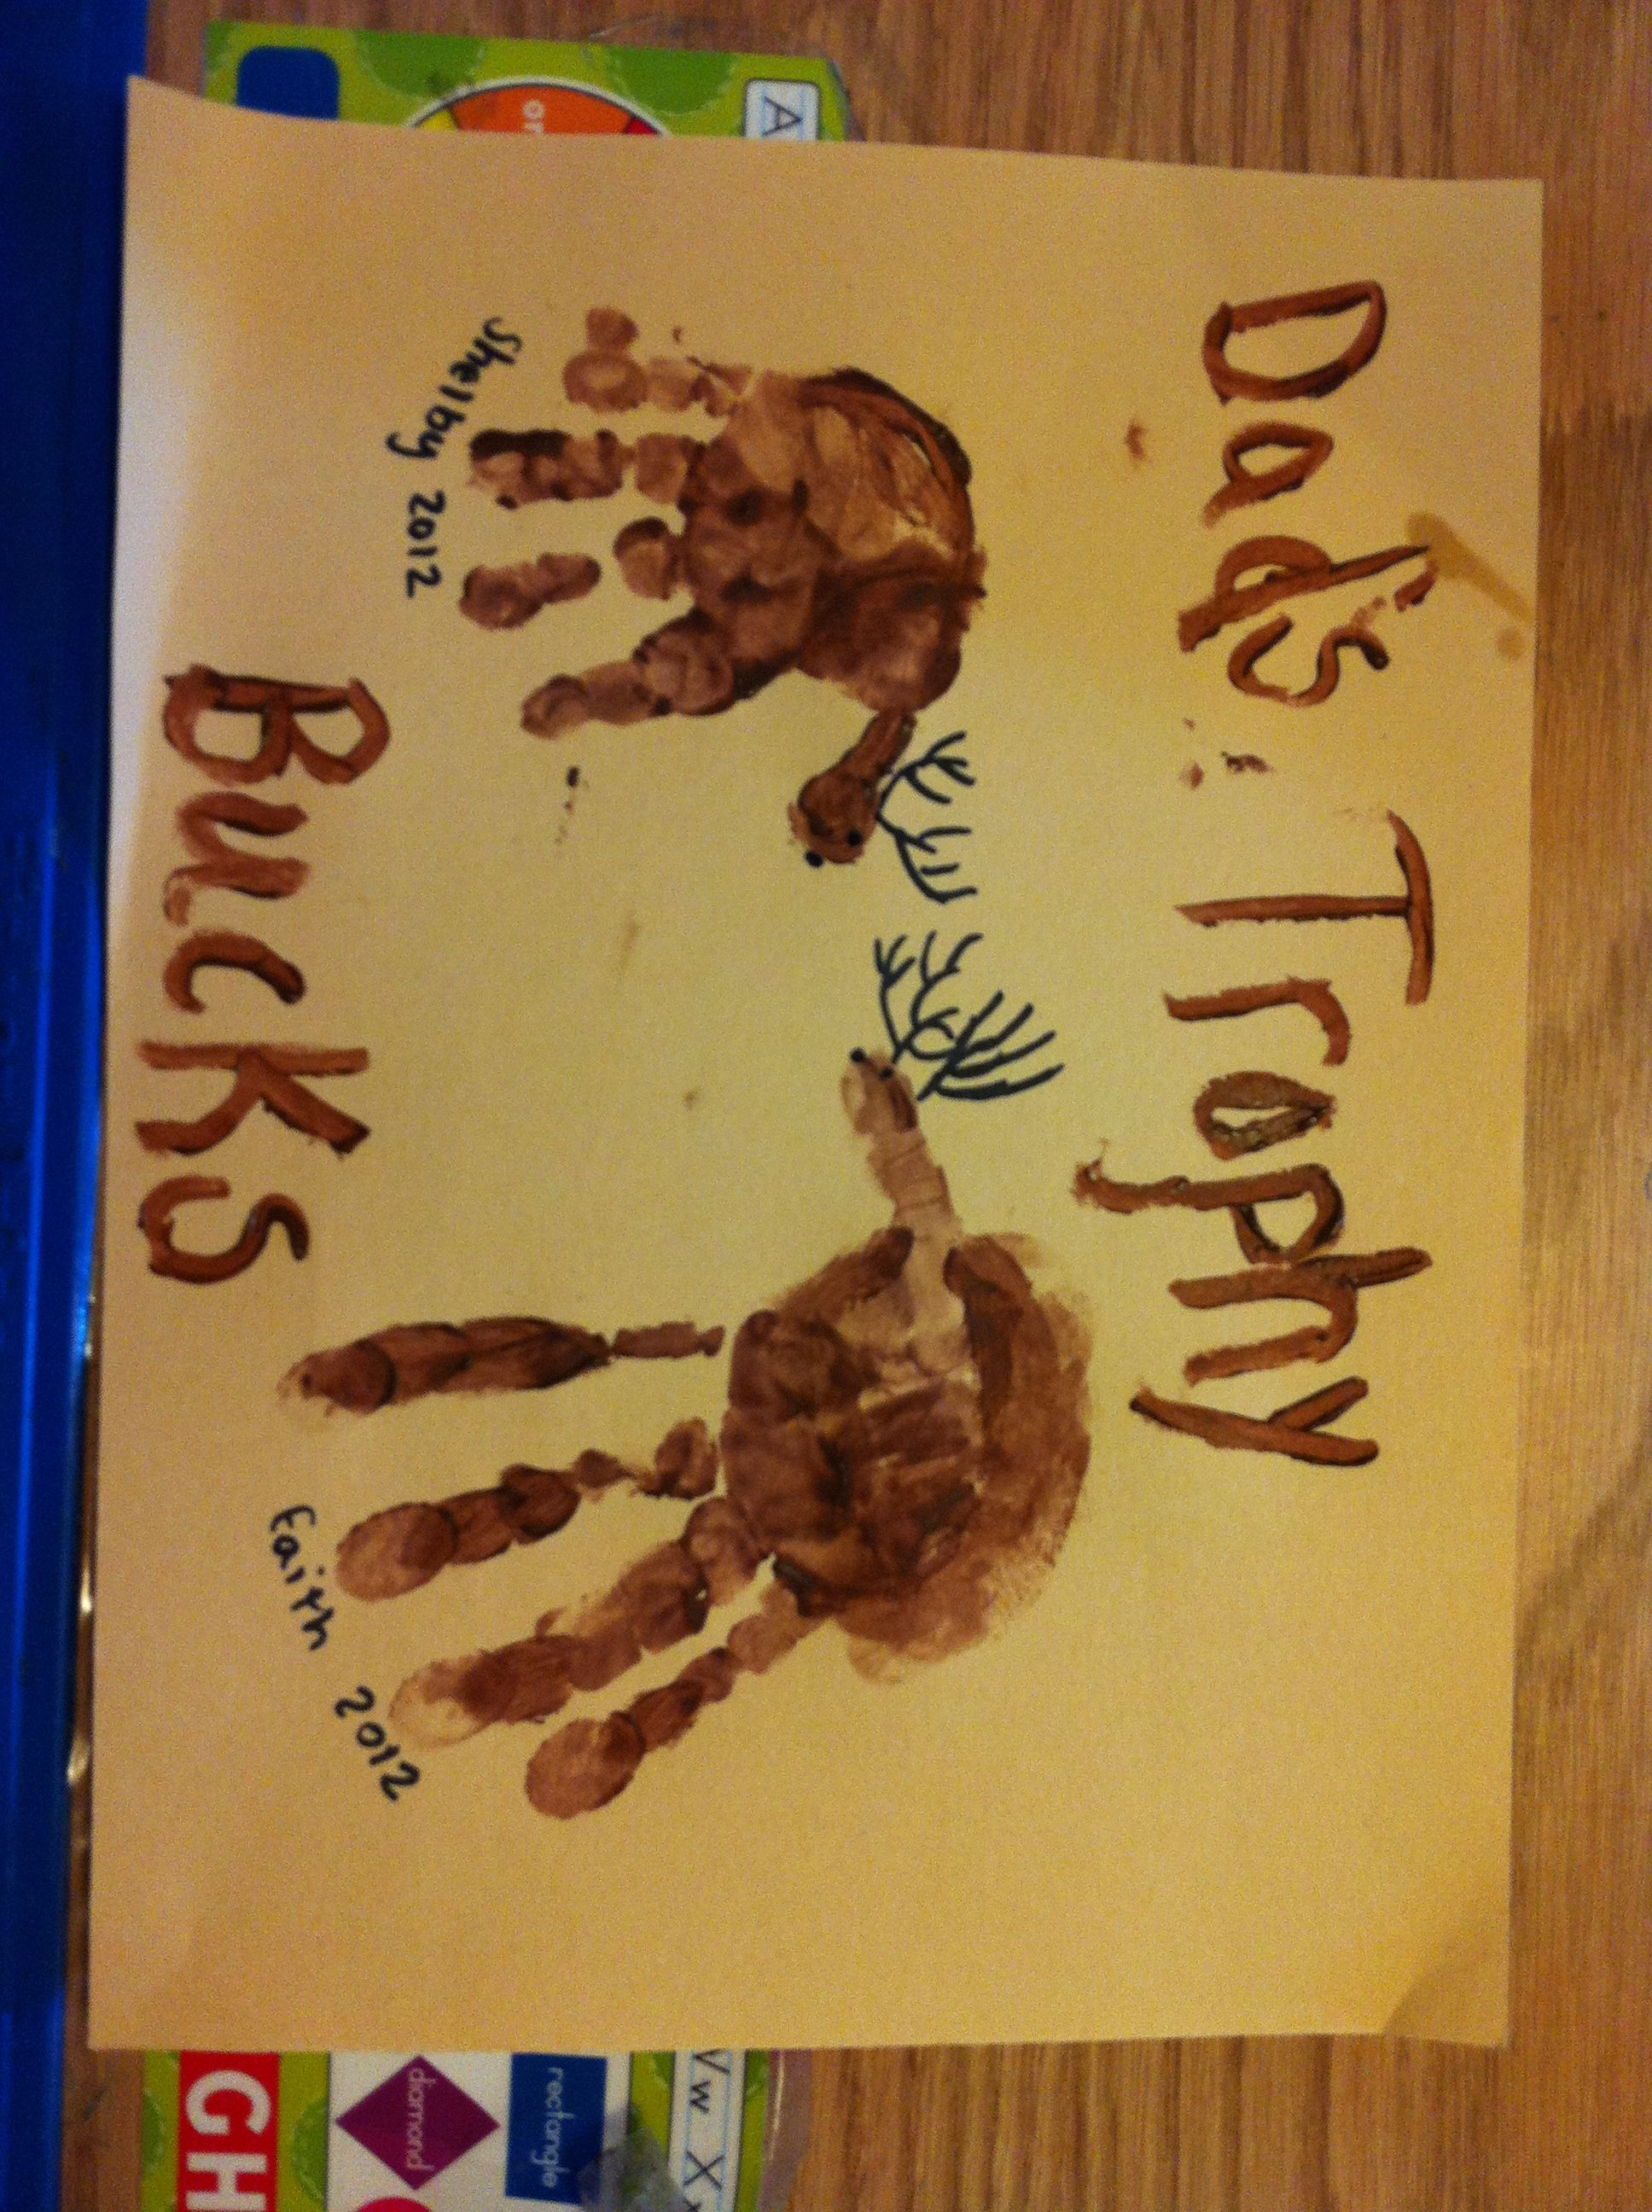 Deer hunting dad cute idea for fathers day from the